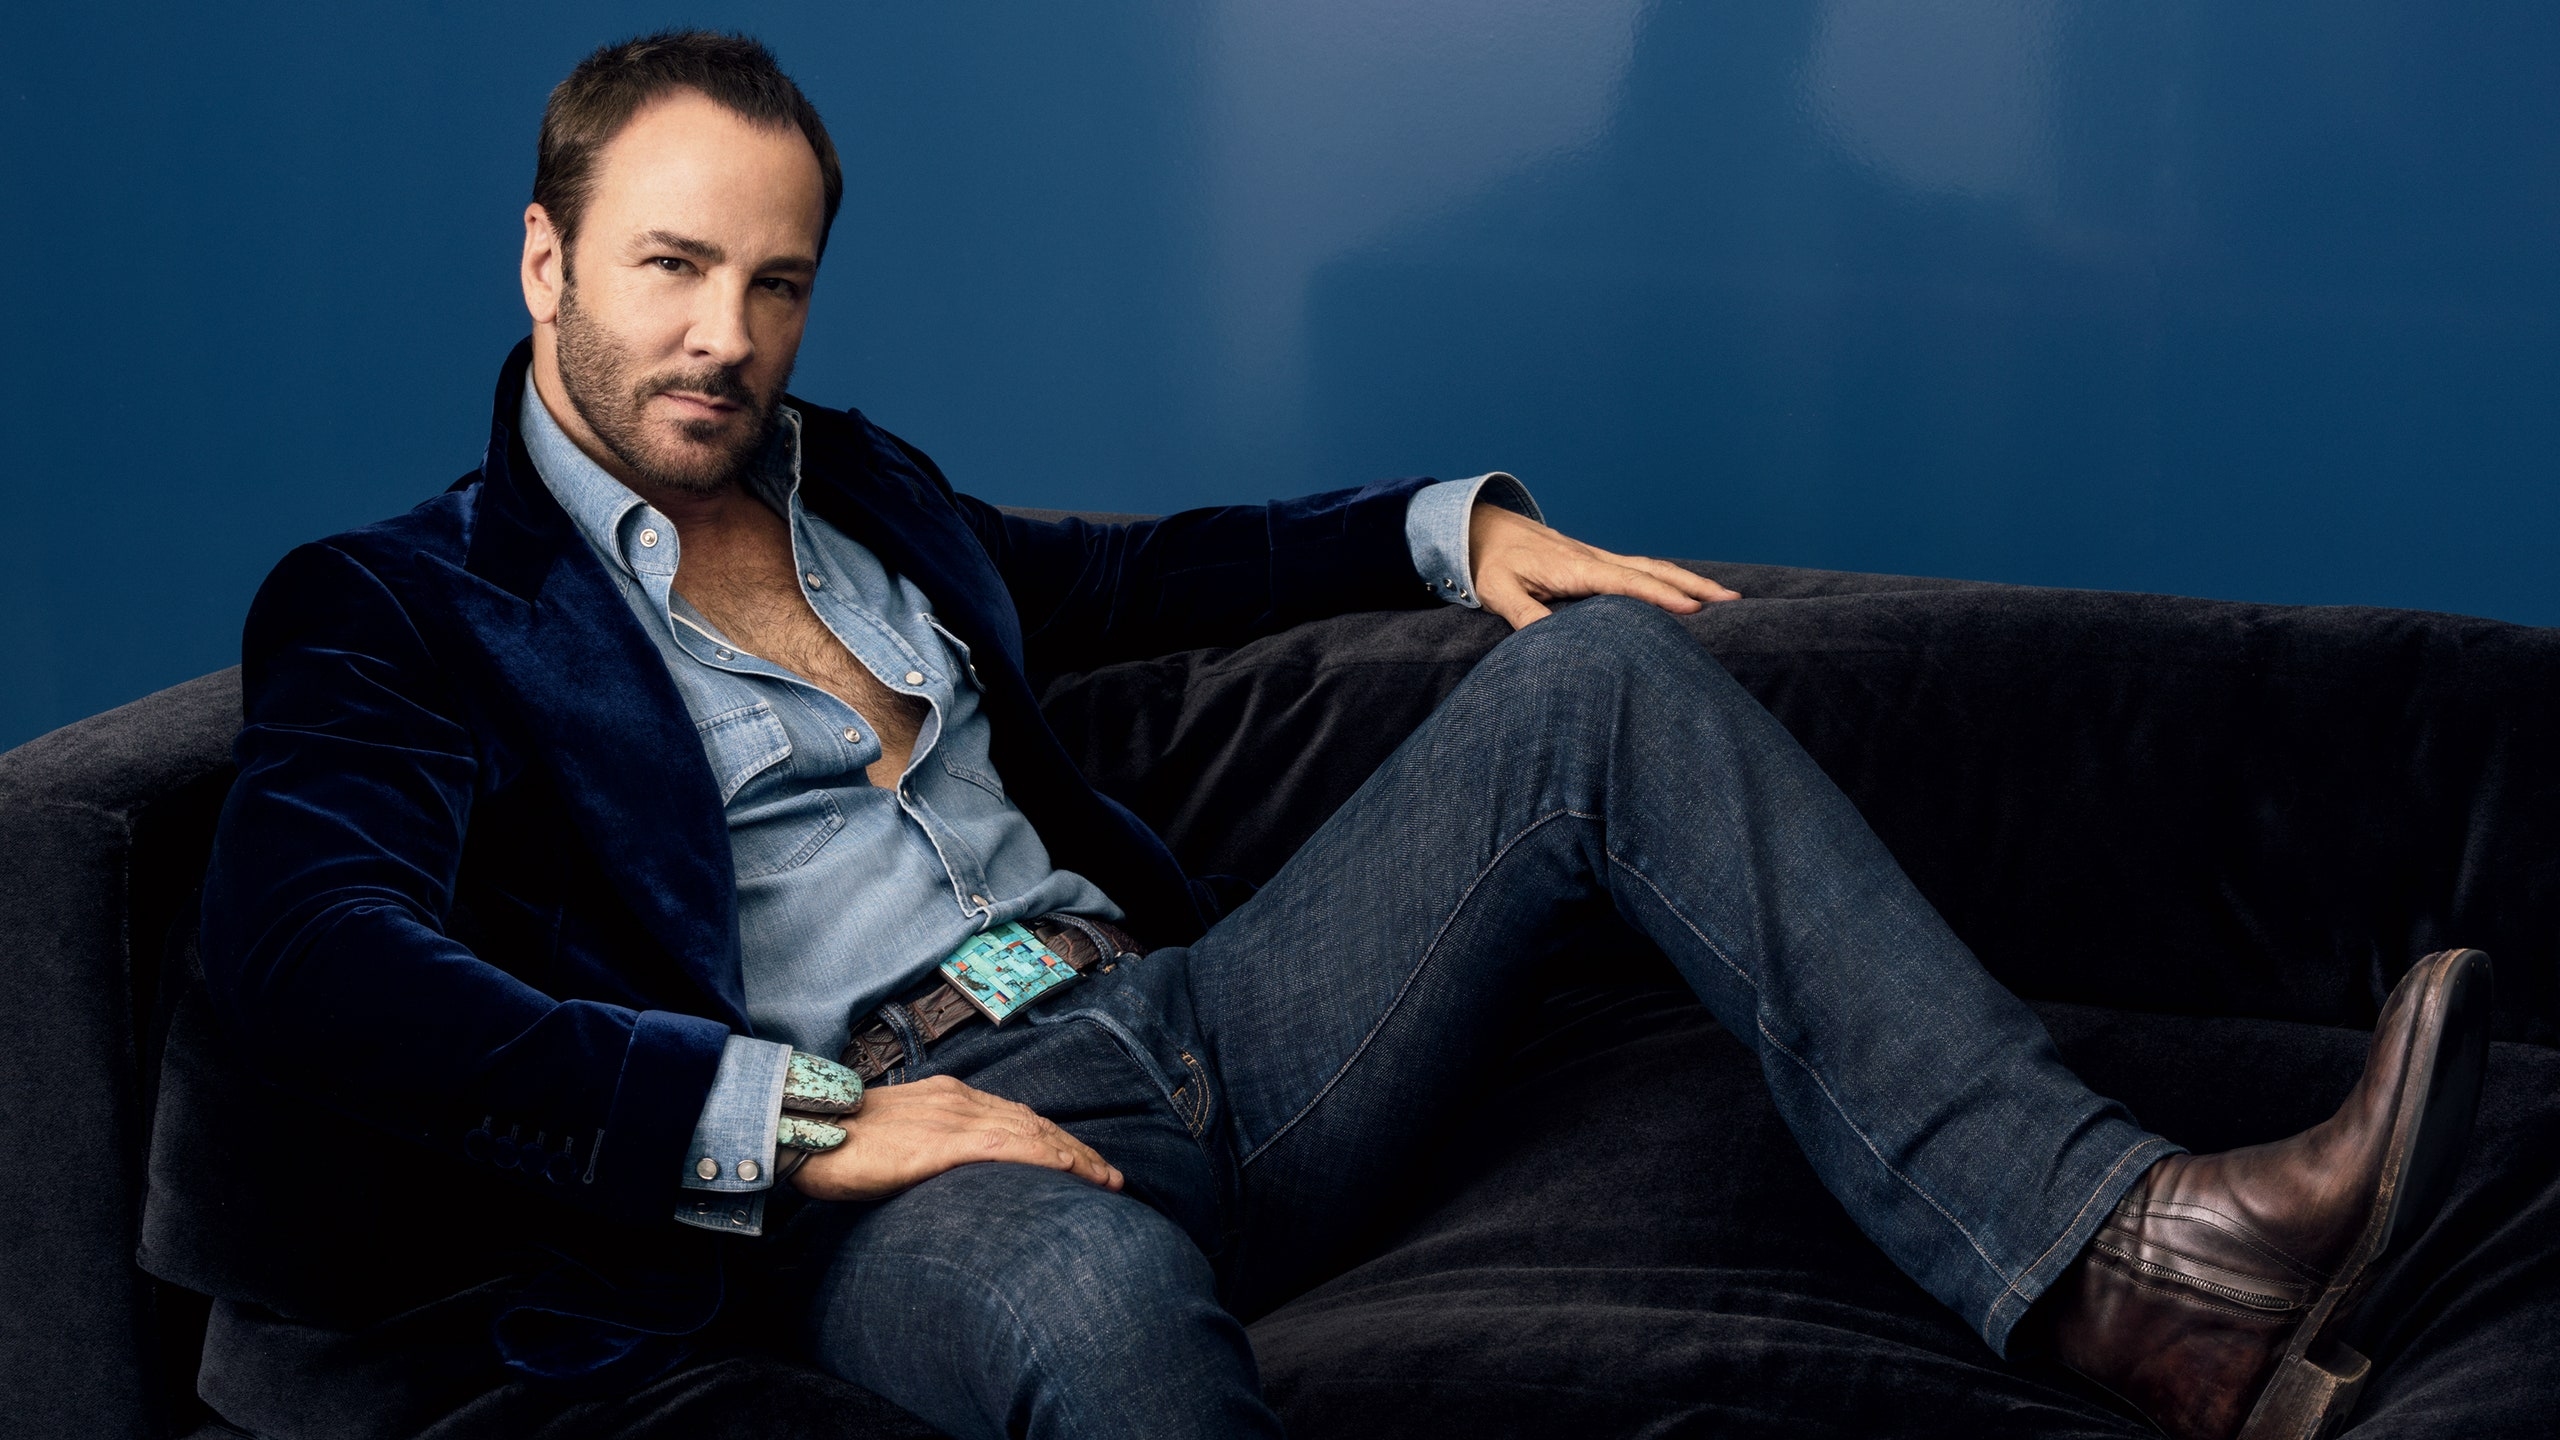 Tom ford casually drops bombshell he is married to richard buckley